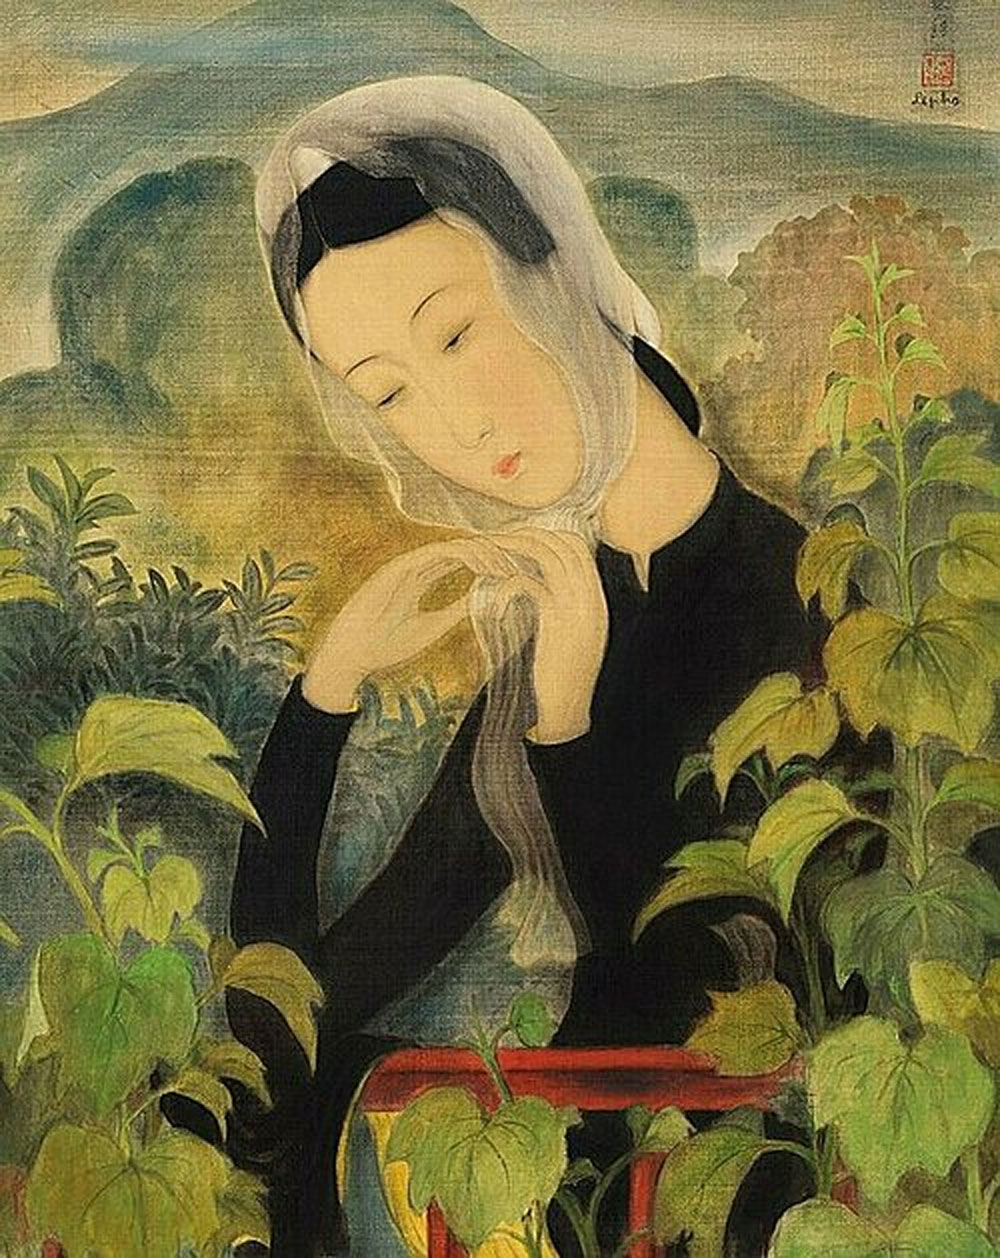 Christie, Le Pho masterpiece, Young Lady Tying Her Scarf, gouache work, Pho's signature,  prominent painter